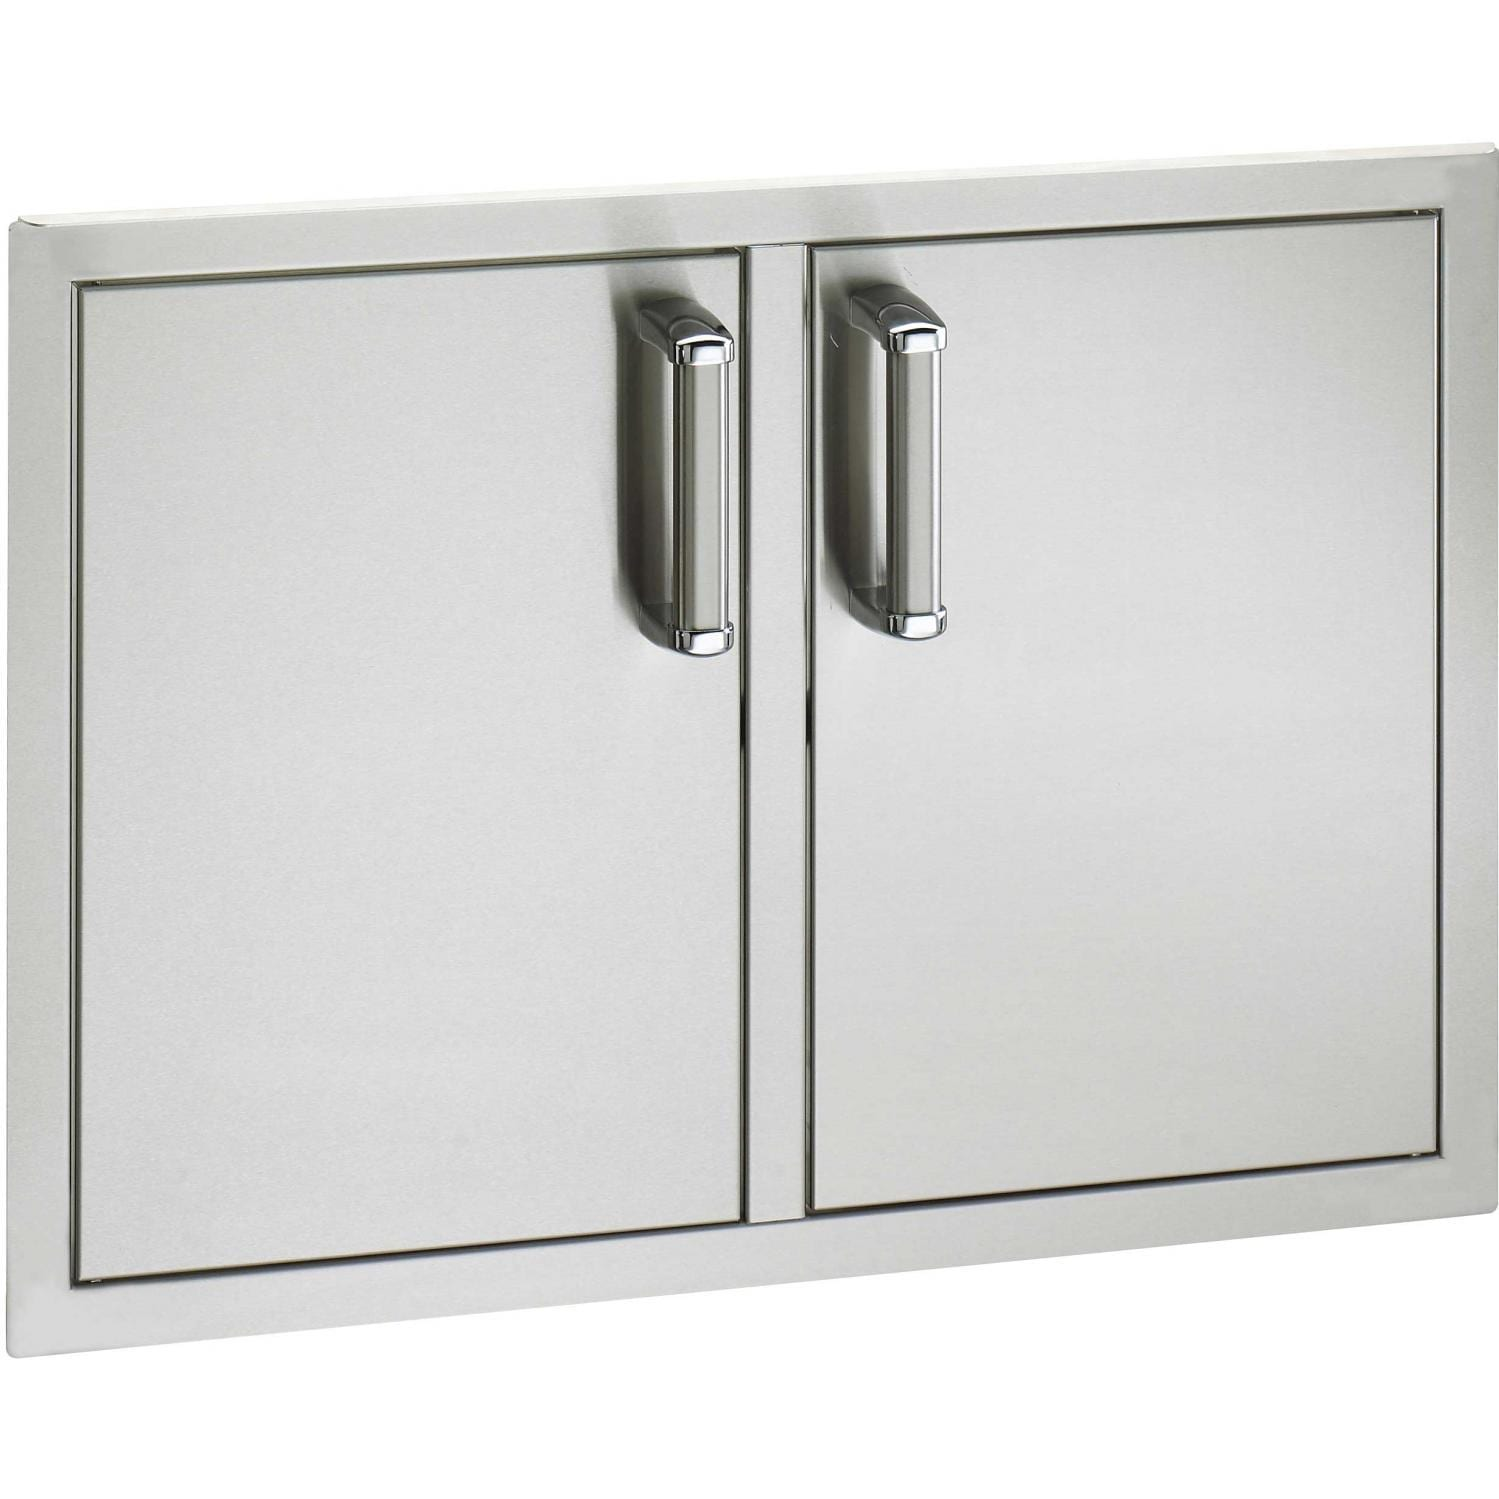 Fire Magic 30-Inch Double Access Door